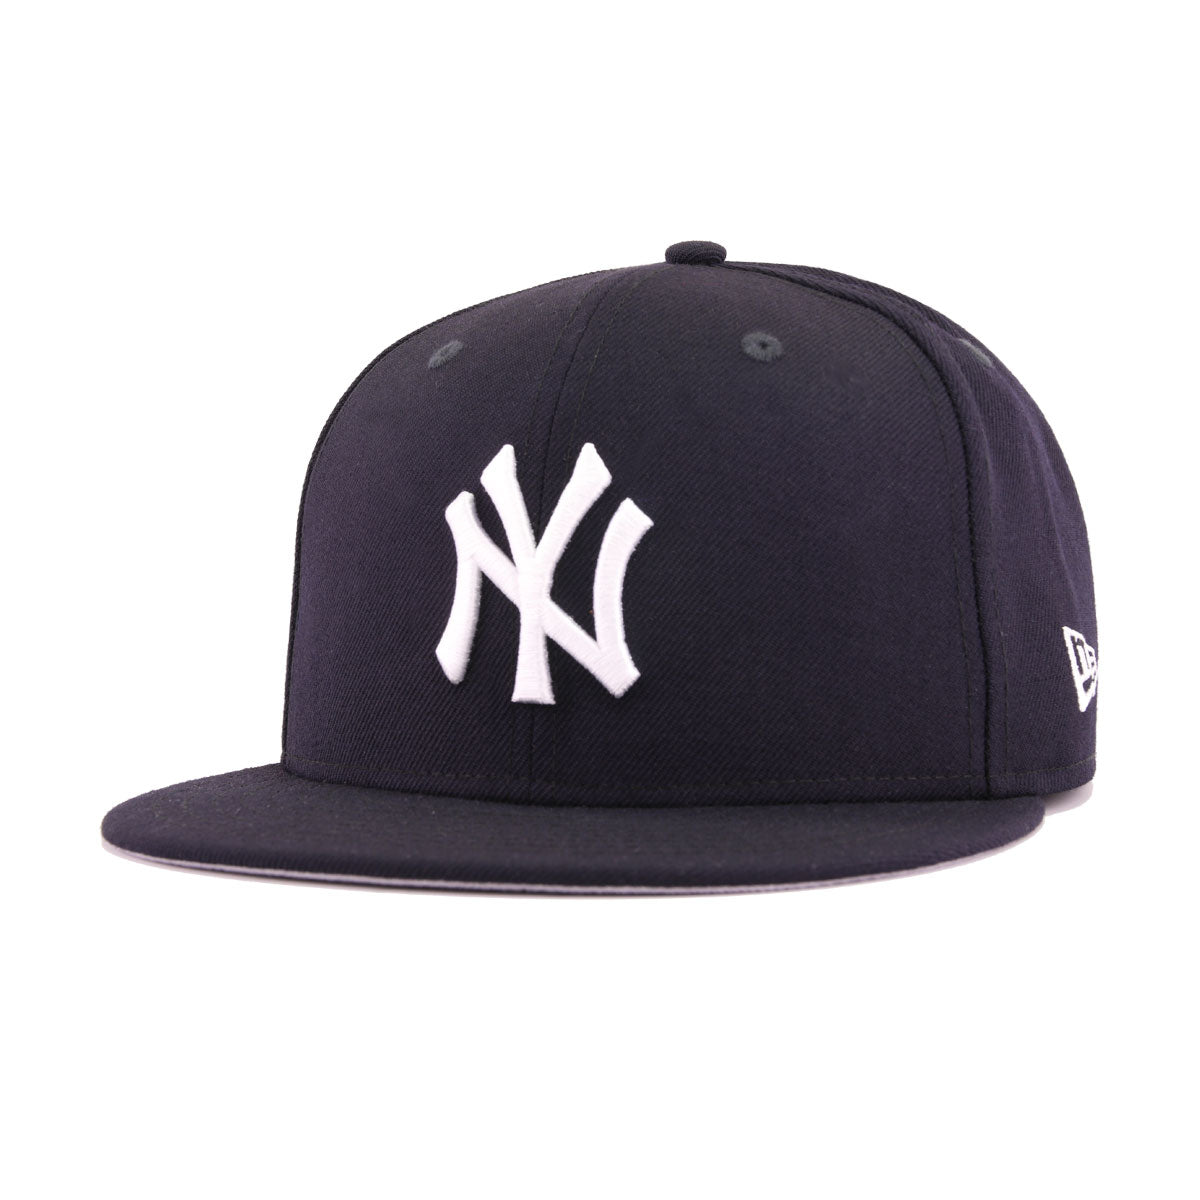 e9ace7eda5fef New York Yankees Navy Cooperstown 2009 World Series New Era 9Fifty Snapback